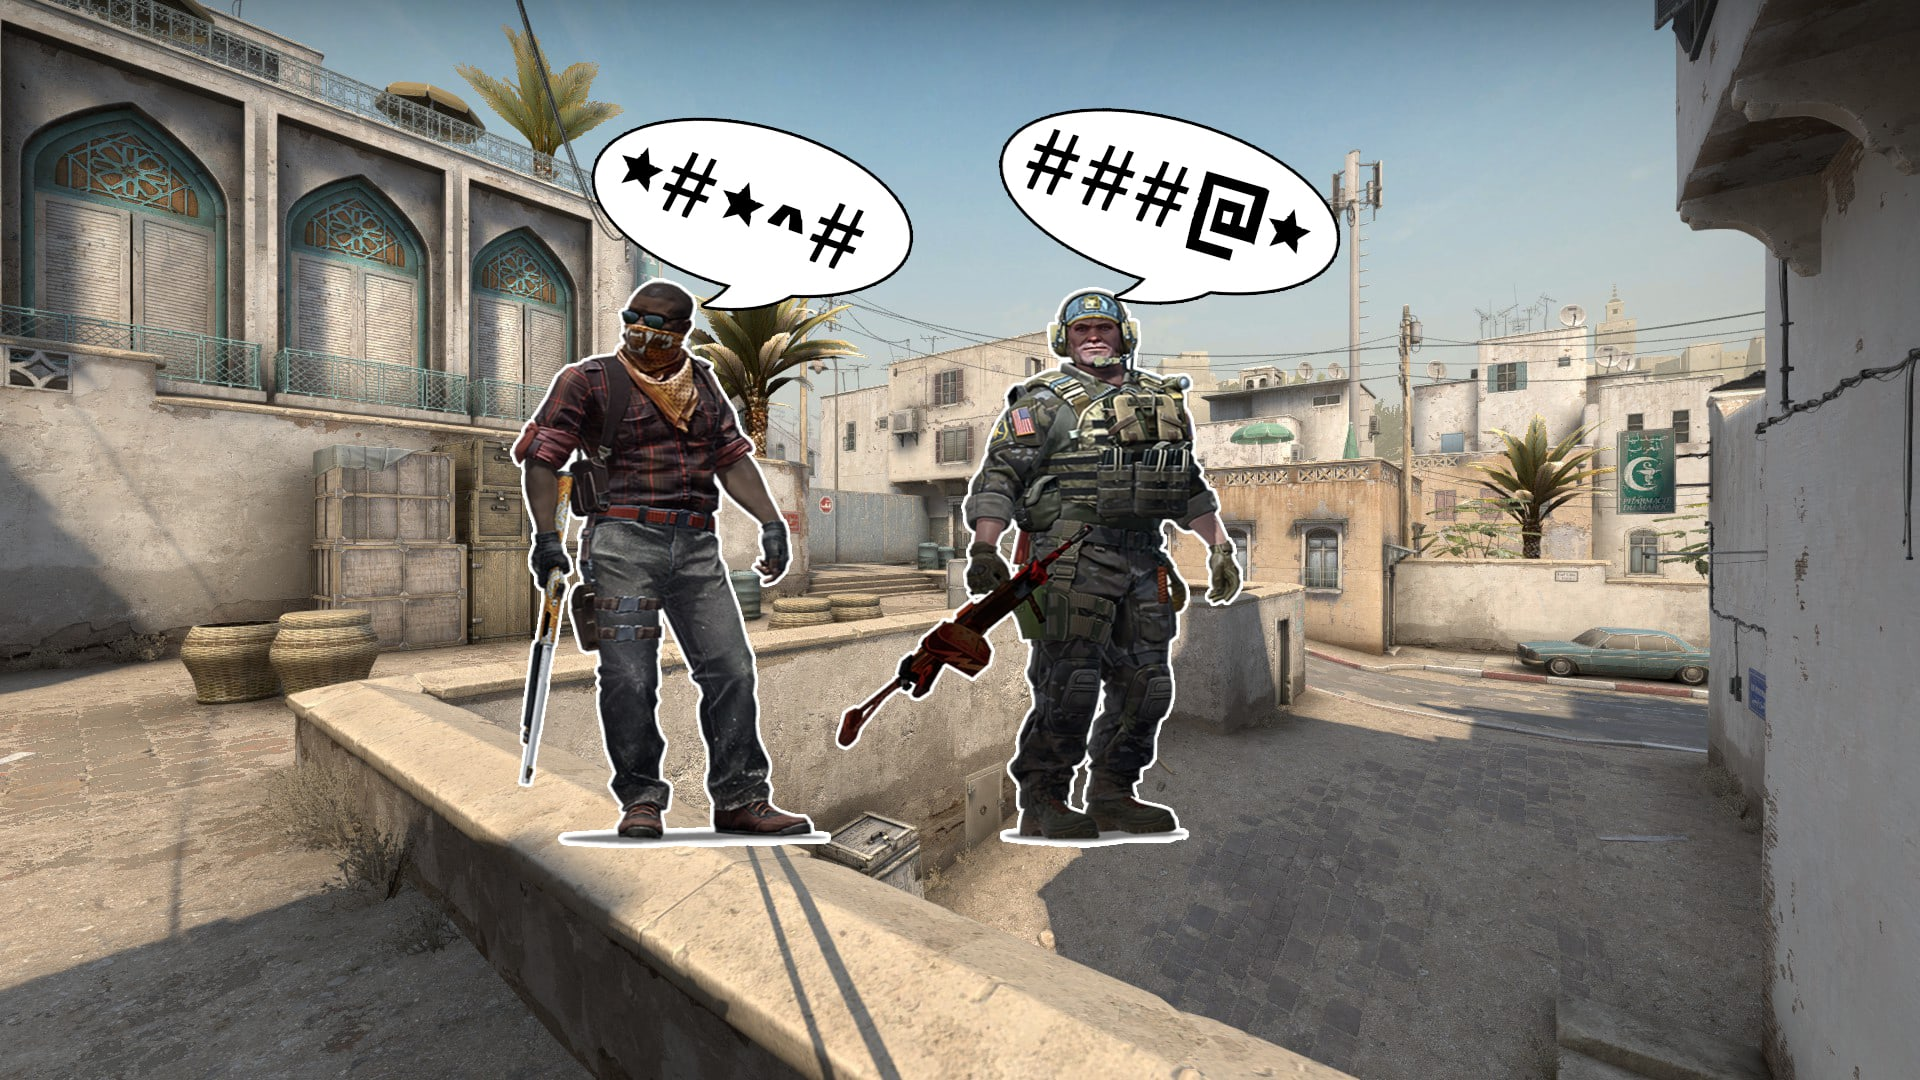 CSGO finally gets 'Text Filtering' Feature to battle in-game Toxicity, but does it work? 5